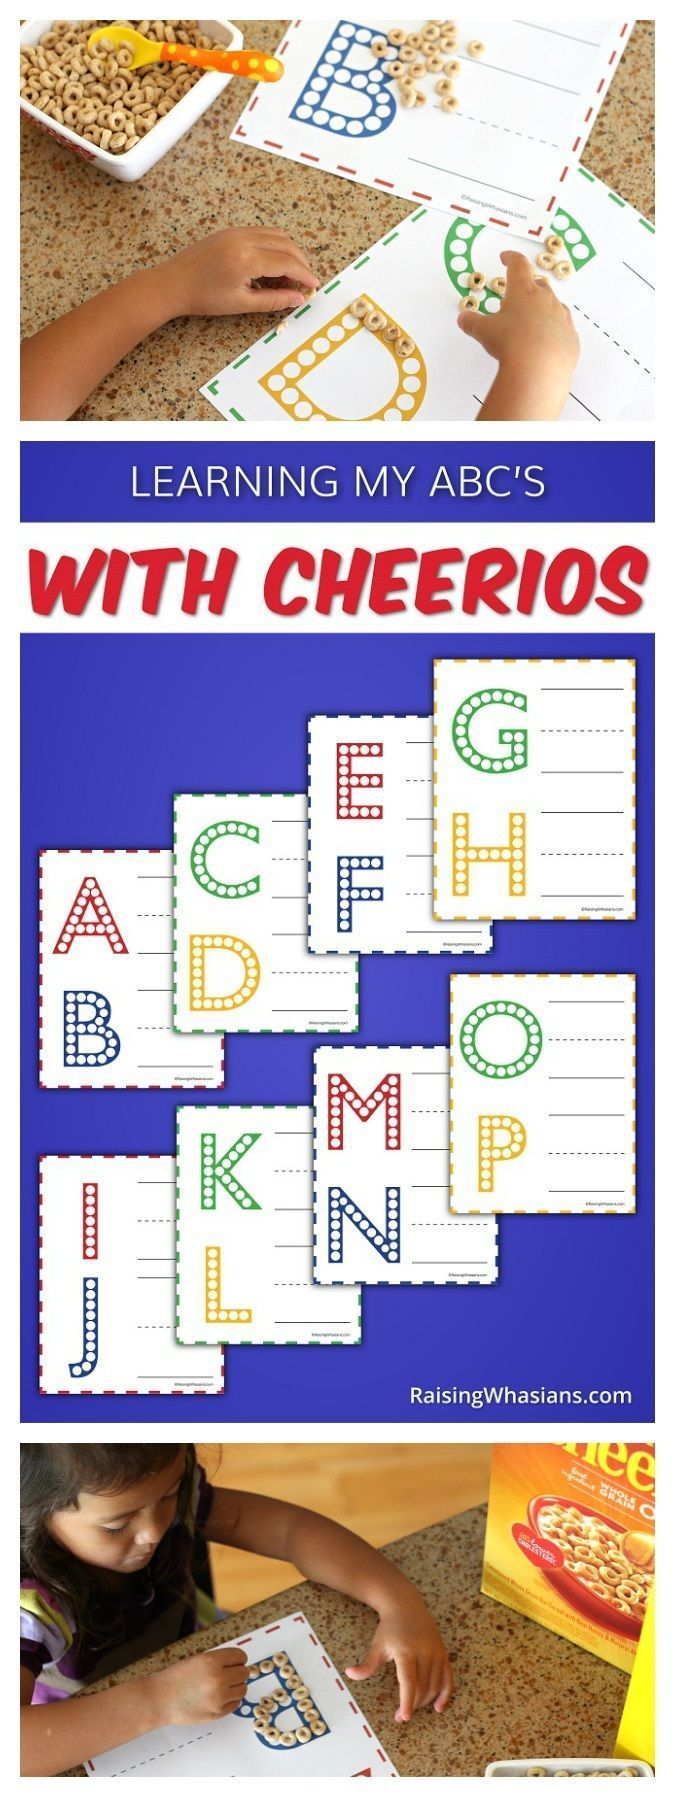 FREE Printable ABC Worksheets for Preschoolers with Cheerios - Raising Whasians via @raisingwhasians #ad